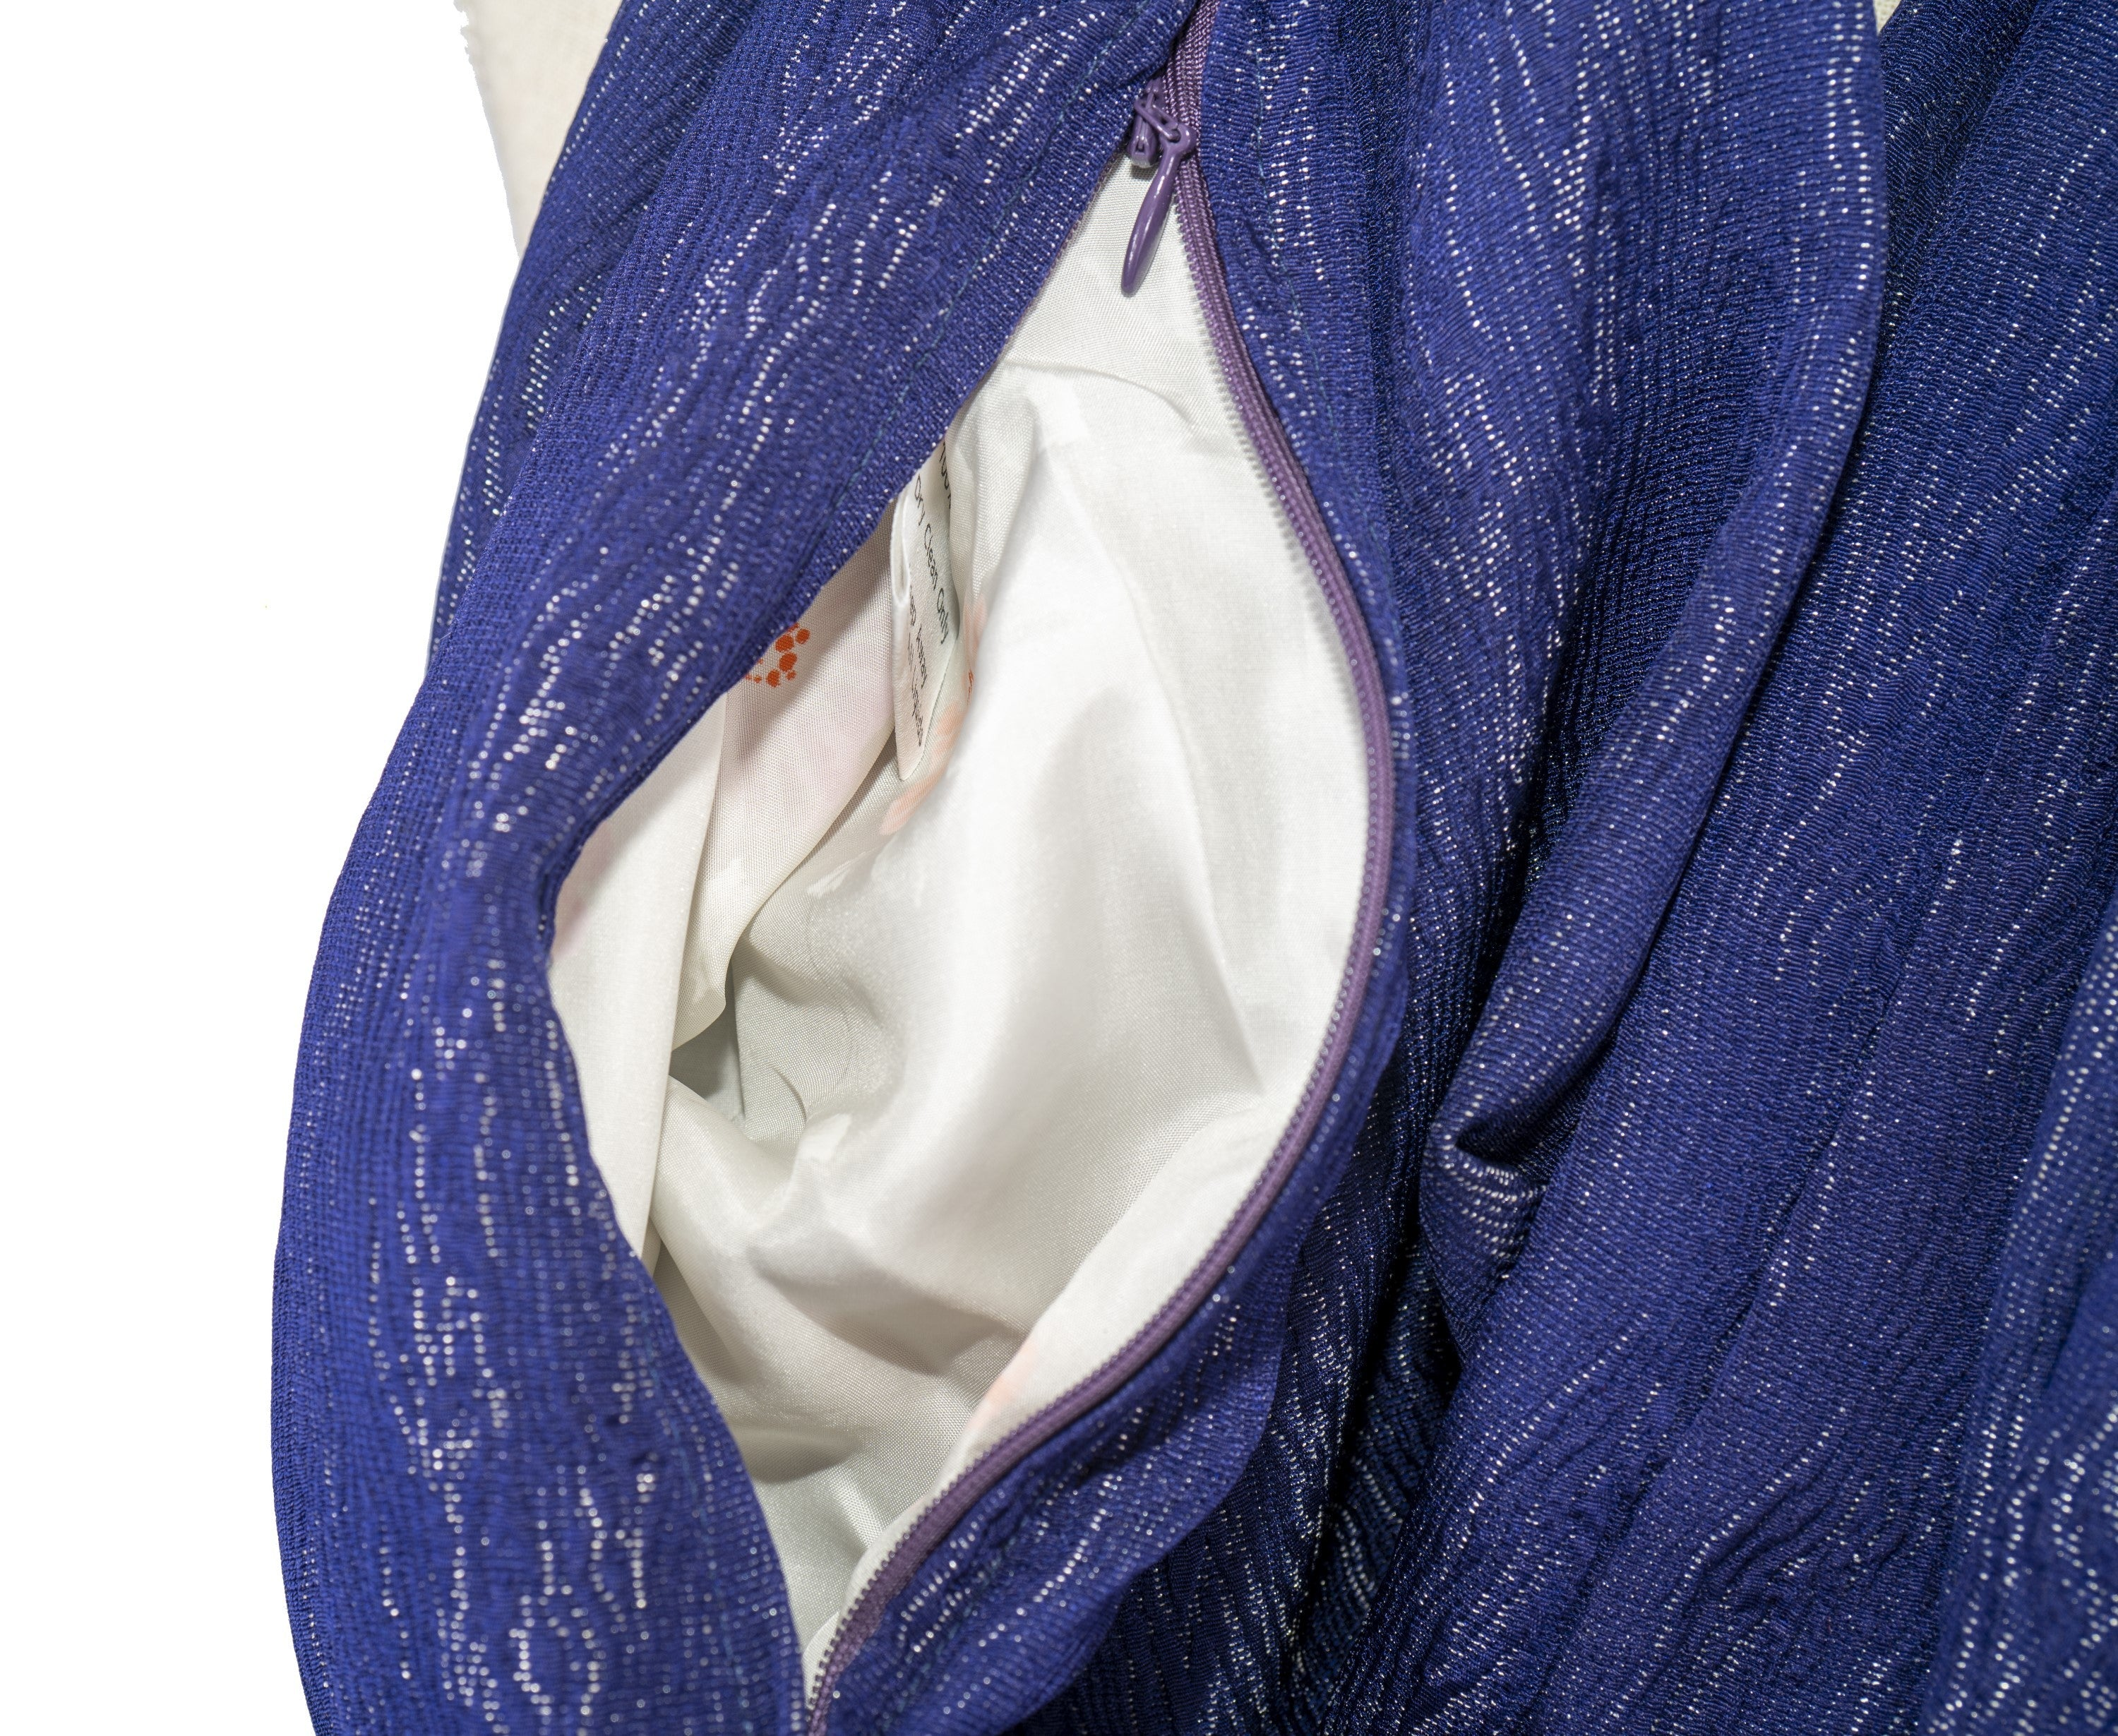 XL 10 Foot Long Soft Kimono Infinity Scarf with Pocket - Purple & Shiny Silver - Pure Japanese Silk - Upcycled Vintage Kimono